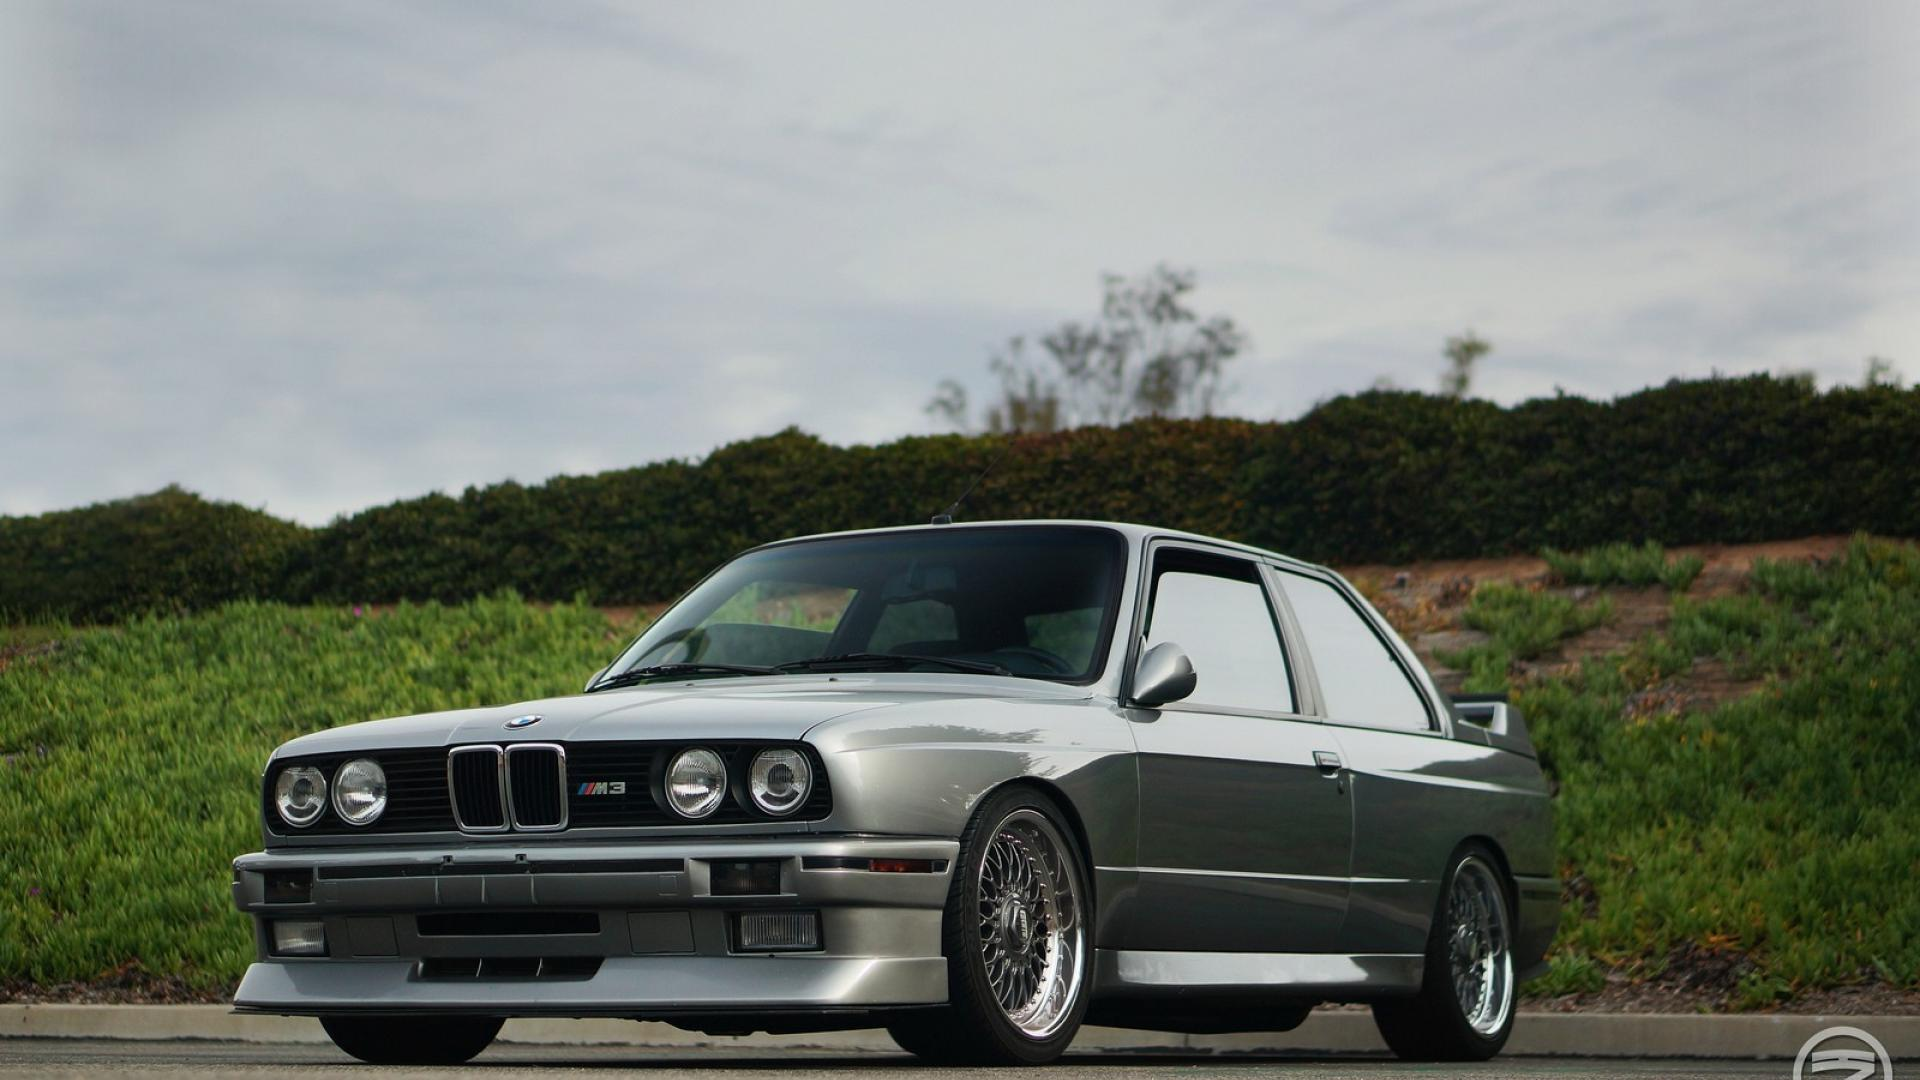 Bmw M3 E30 >> Bmw E30 M3 Wallpaper - WallpaperSafari